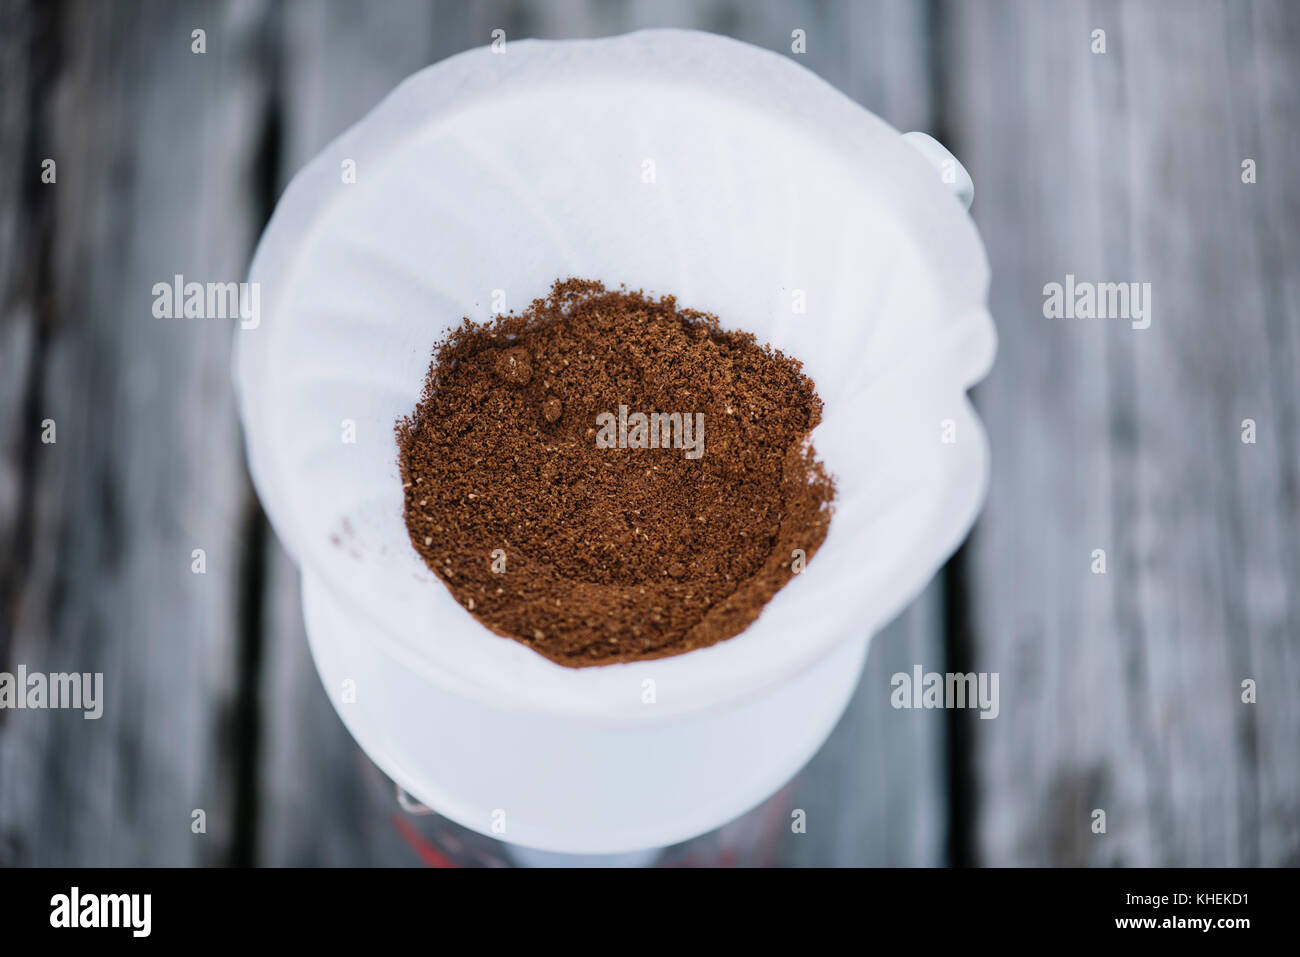 Freshly ground coffee beans in the pour over dripper, about to be brewed into delicious coffee - Stock Image